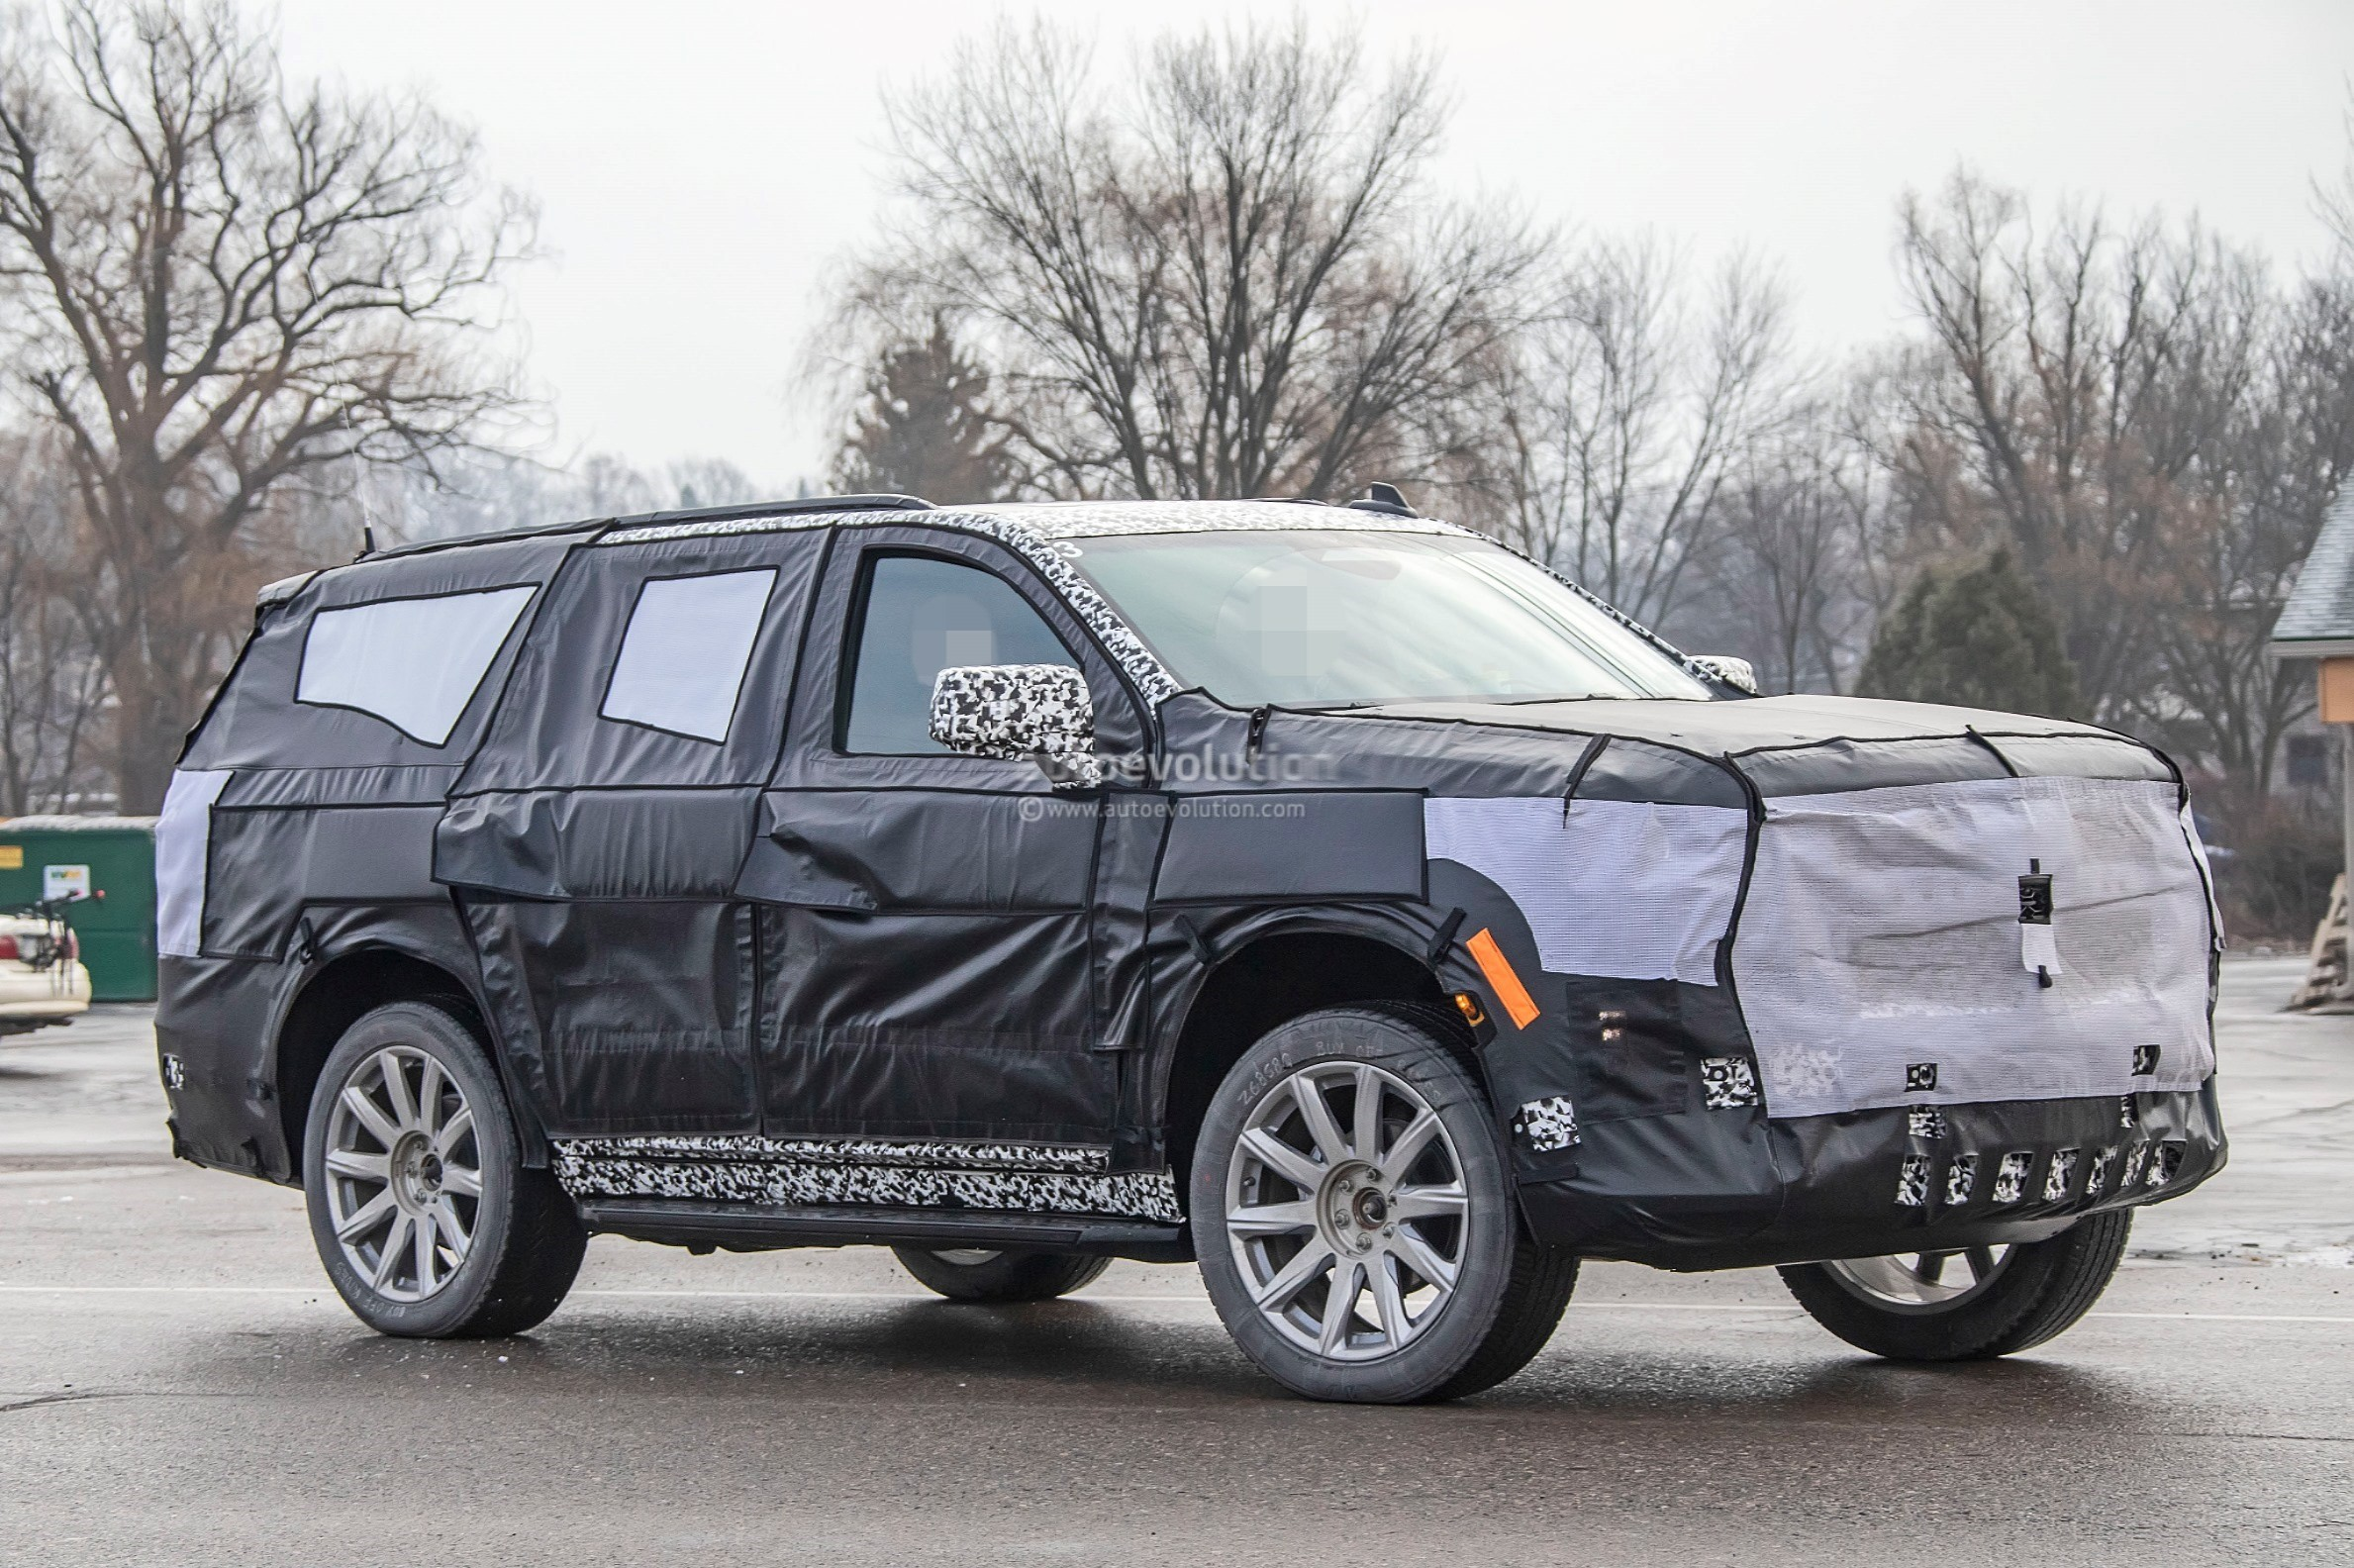 202 - [Cadillac] Escalade V 2020-cadillac-escalade-spied-with-makeshift-dodge-ram-crosshair-grille_25